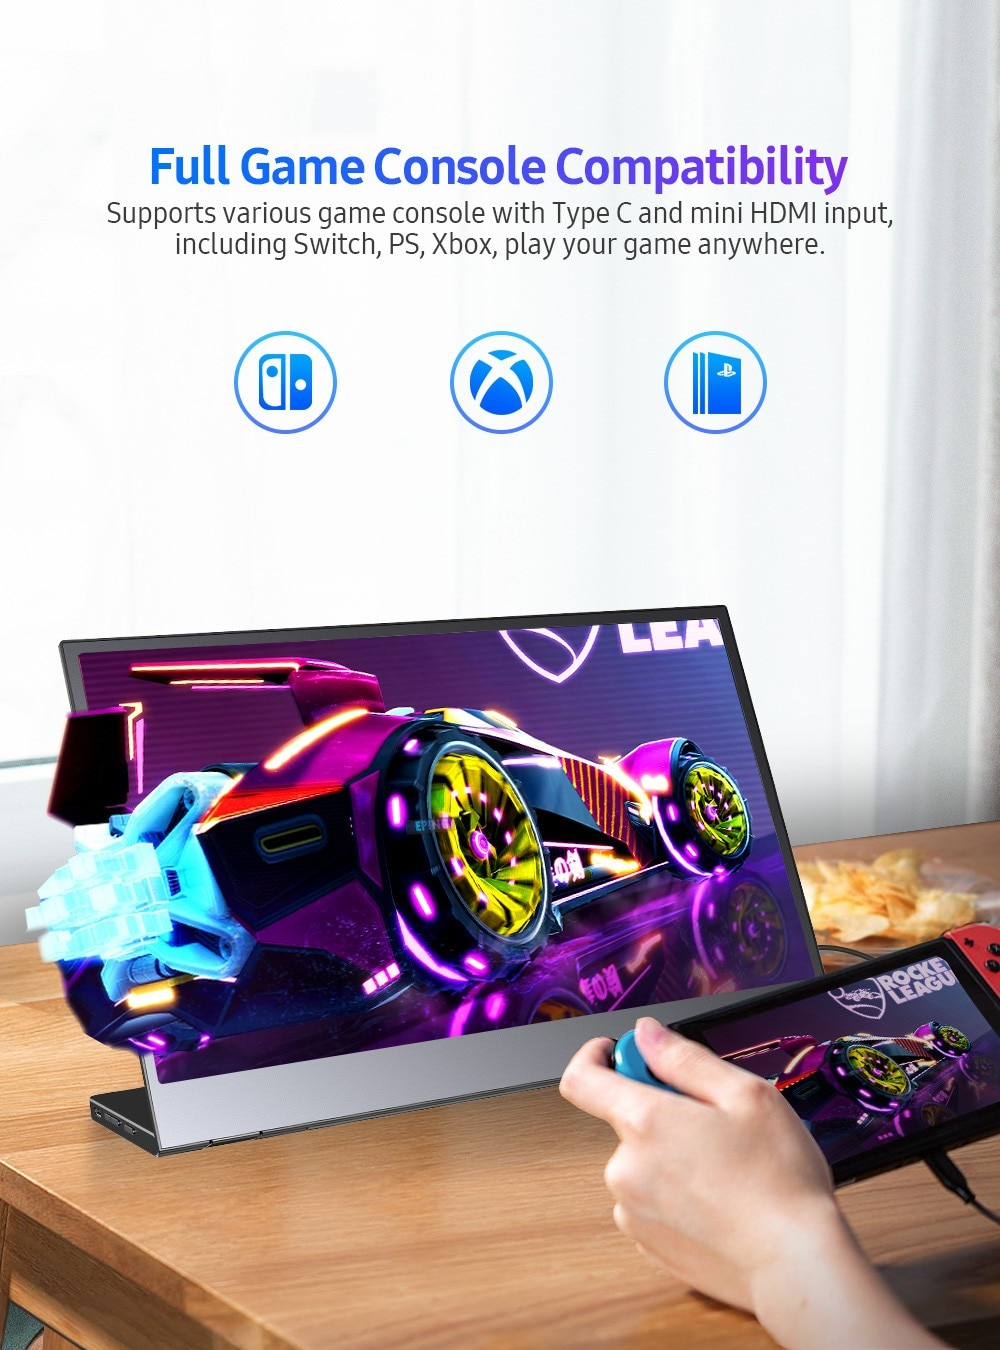 UPERFECT H01 FHD Portable Monitor 1080P Type-C HDMI Gaming Display Dual Speaker IPS LCD Screen For Laptop PC Smartphone Switch